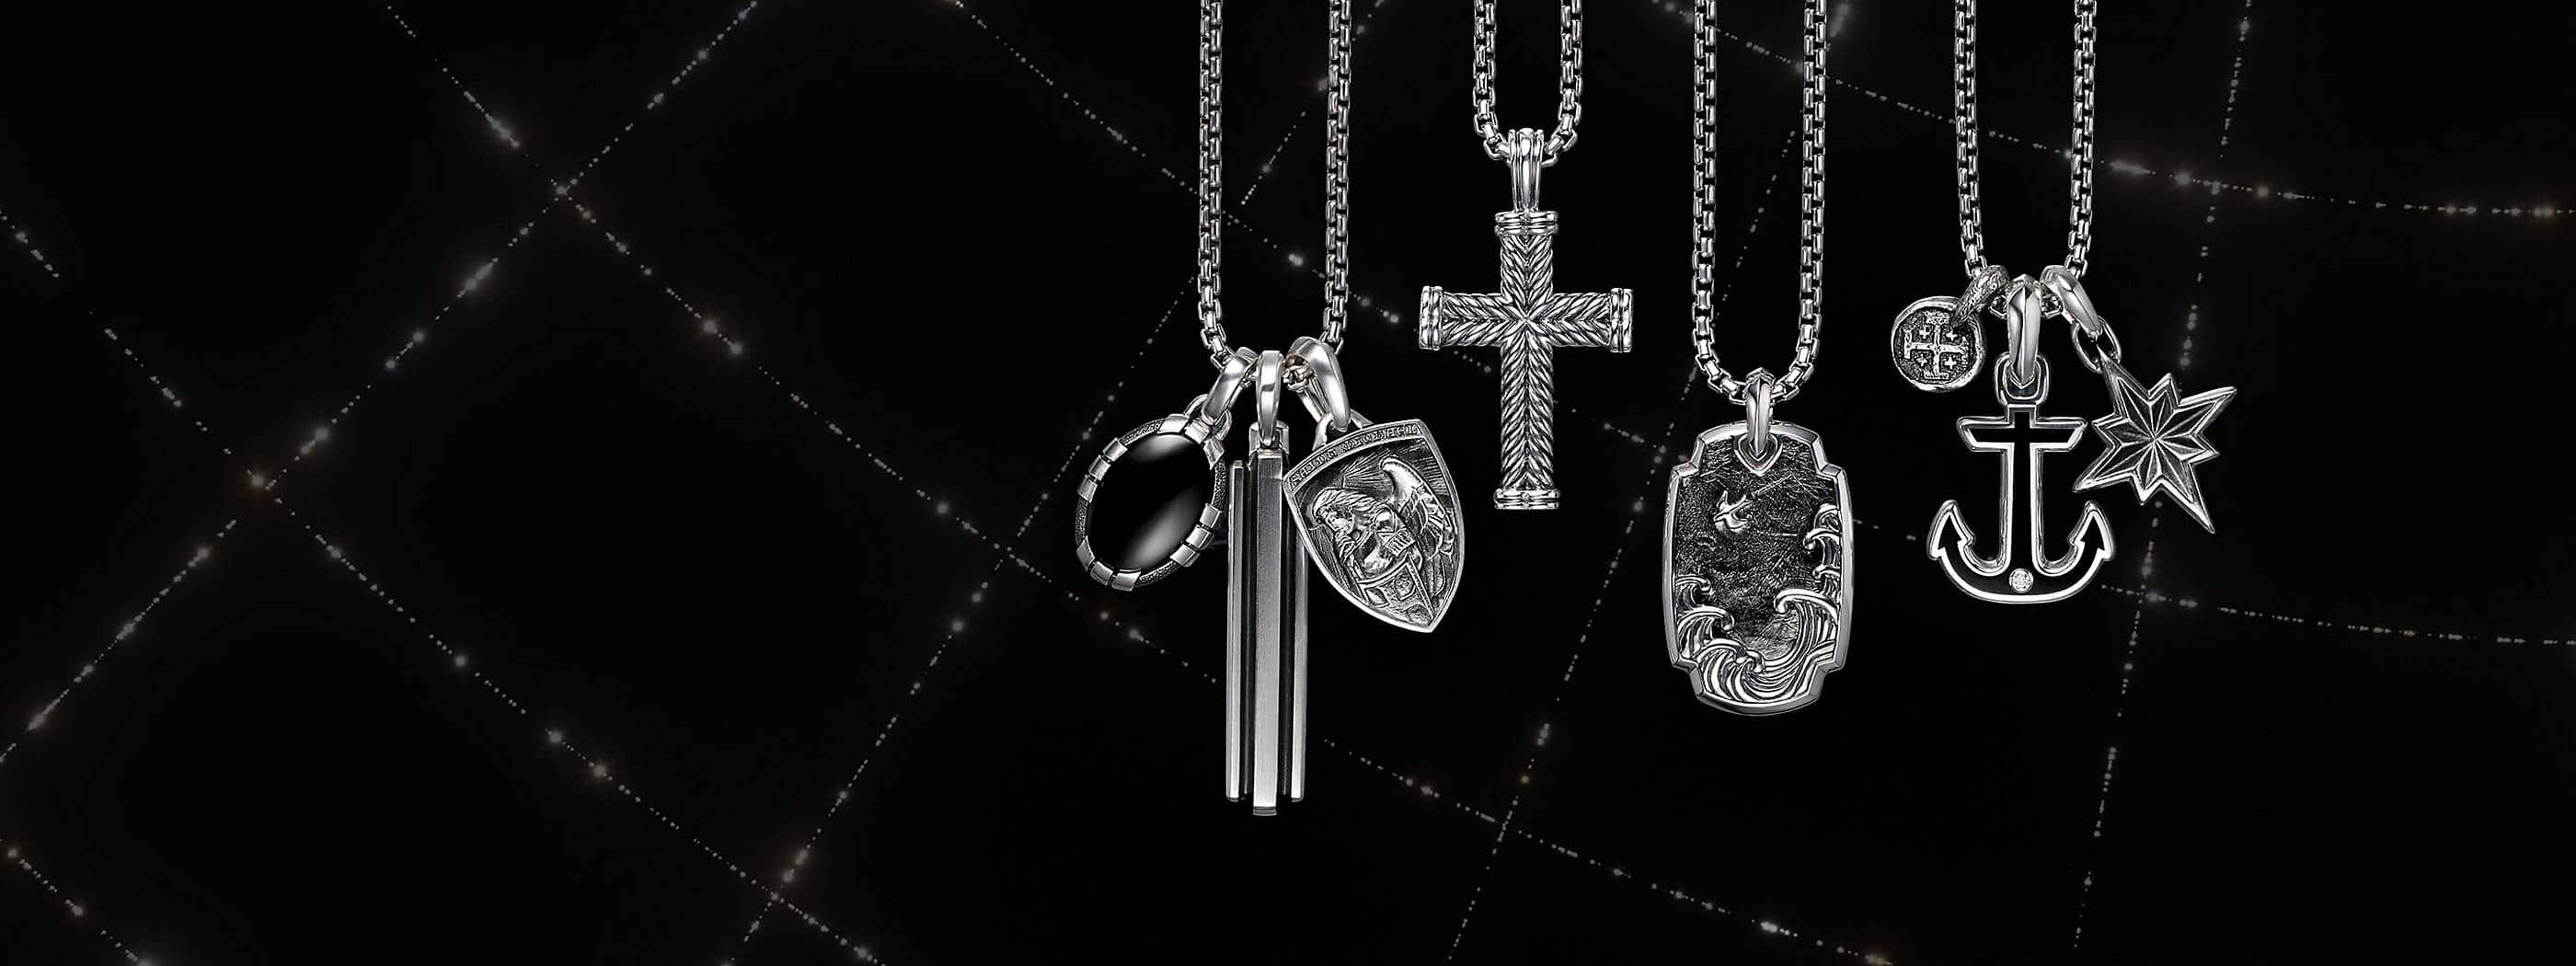 A color photograph shows four David Yurman men's box-chain necklaces in sterling silver arranged in a row in front of a black background with white latitude and longitude lines. Each necklace is strung with one or three David Yurman men's amulets crafted from sterling silver. From left is a Southwest amulet with black onyx, a Deco amulet, a Saint Michael shield-shaped amulet, a Chevron cross, a Waves tag with forged carbon, a Shipwreck coin amulet, a Maritime anchor with black onyx and a single diamond and a Maritime North Star amulet.